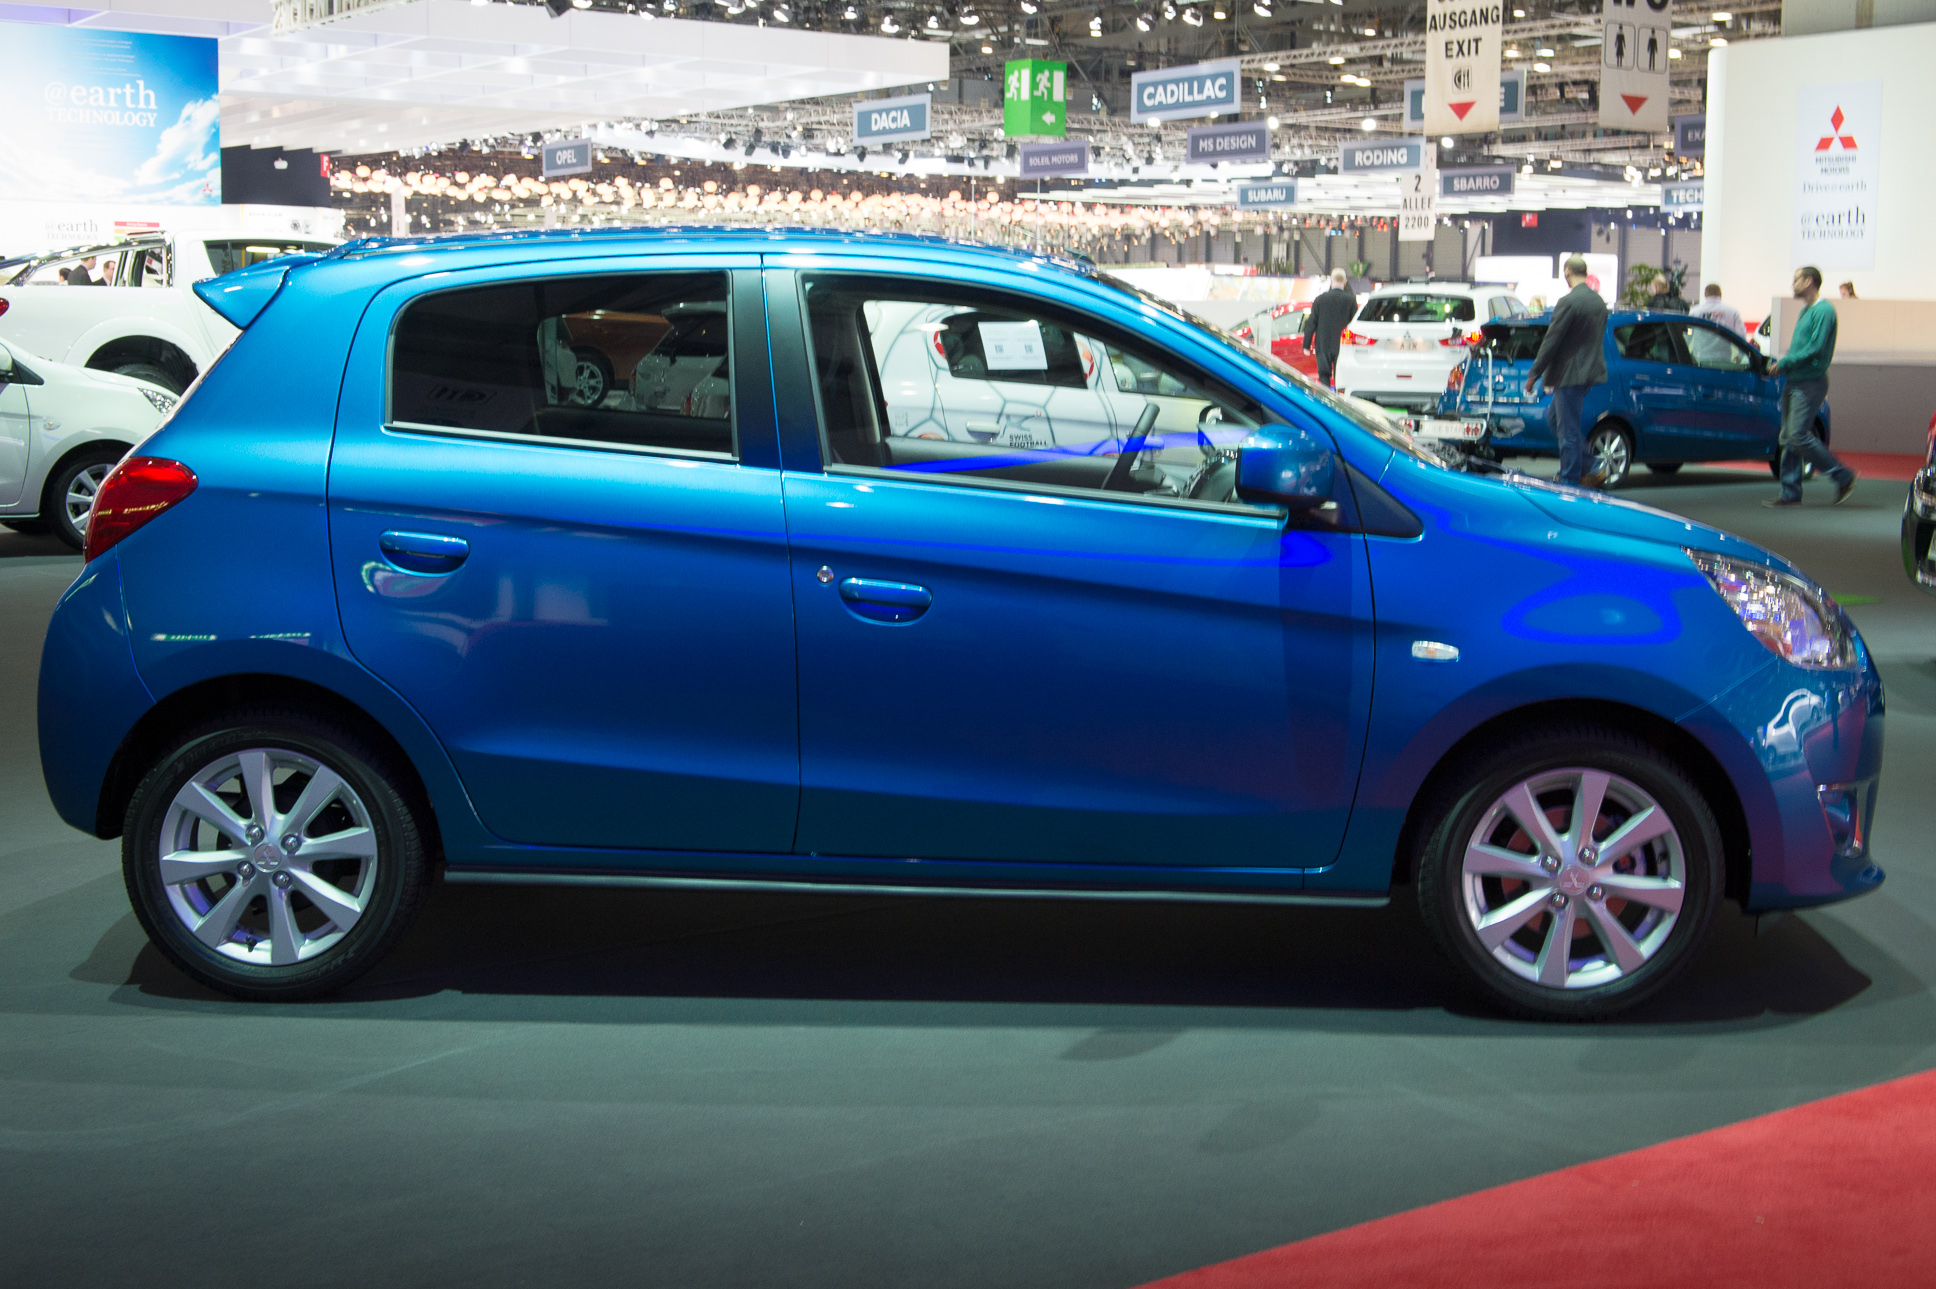 2013-mitsubishi-space-star-blau-genf-auto-salon-02